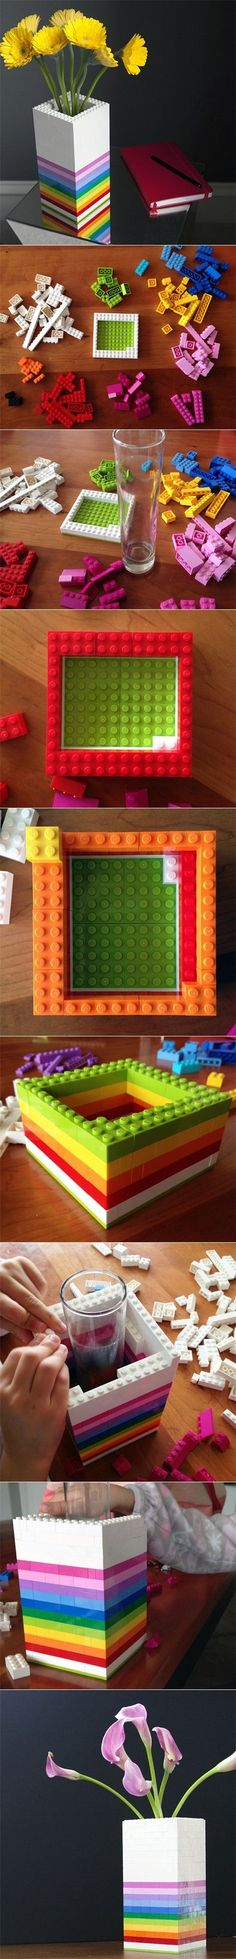 DIY Lego Vase....I dont think it has to be this complicated! Haha! But the idea is cute                                                                                                                                                      Mehr